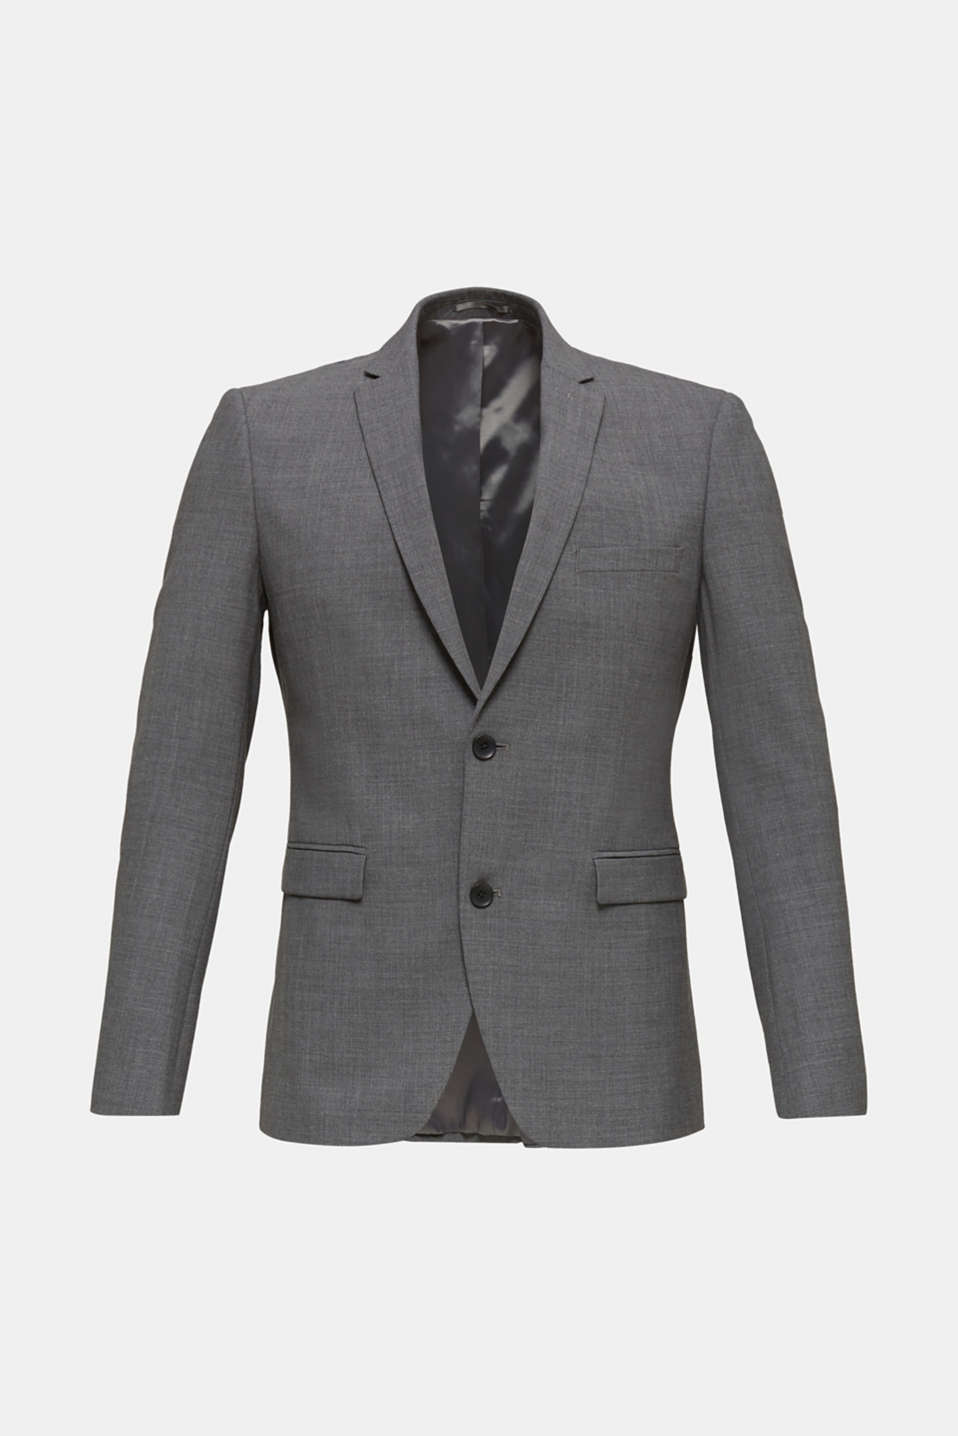 ACTIVE SUIT tailored jacket, wool blend, DARK GREY 5, detail image number 7